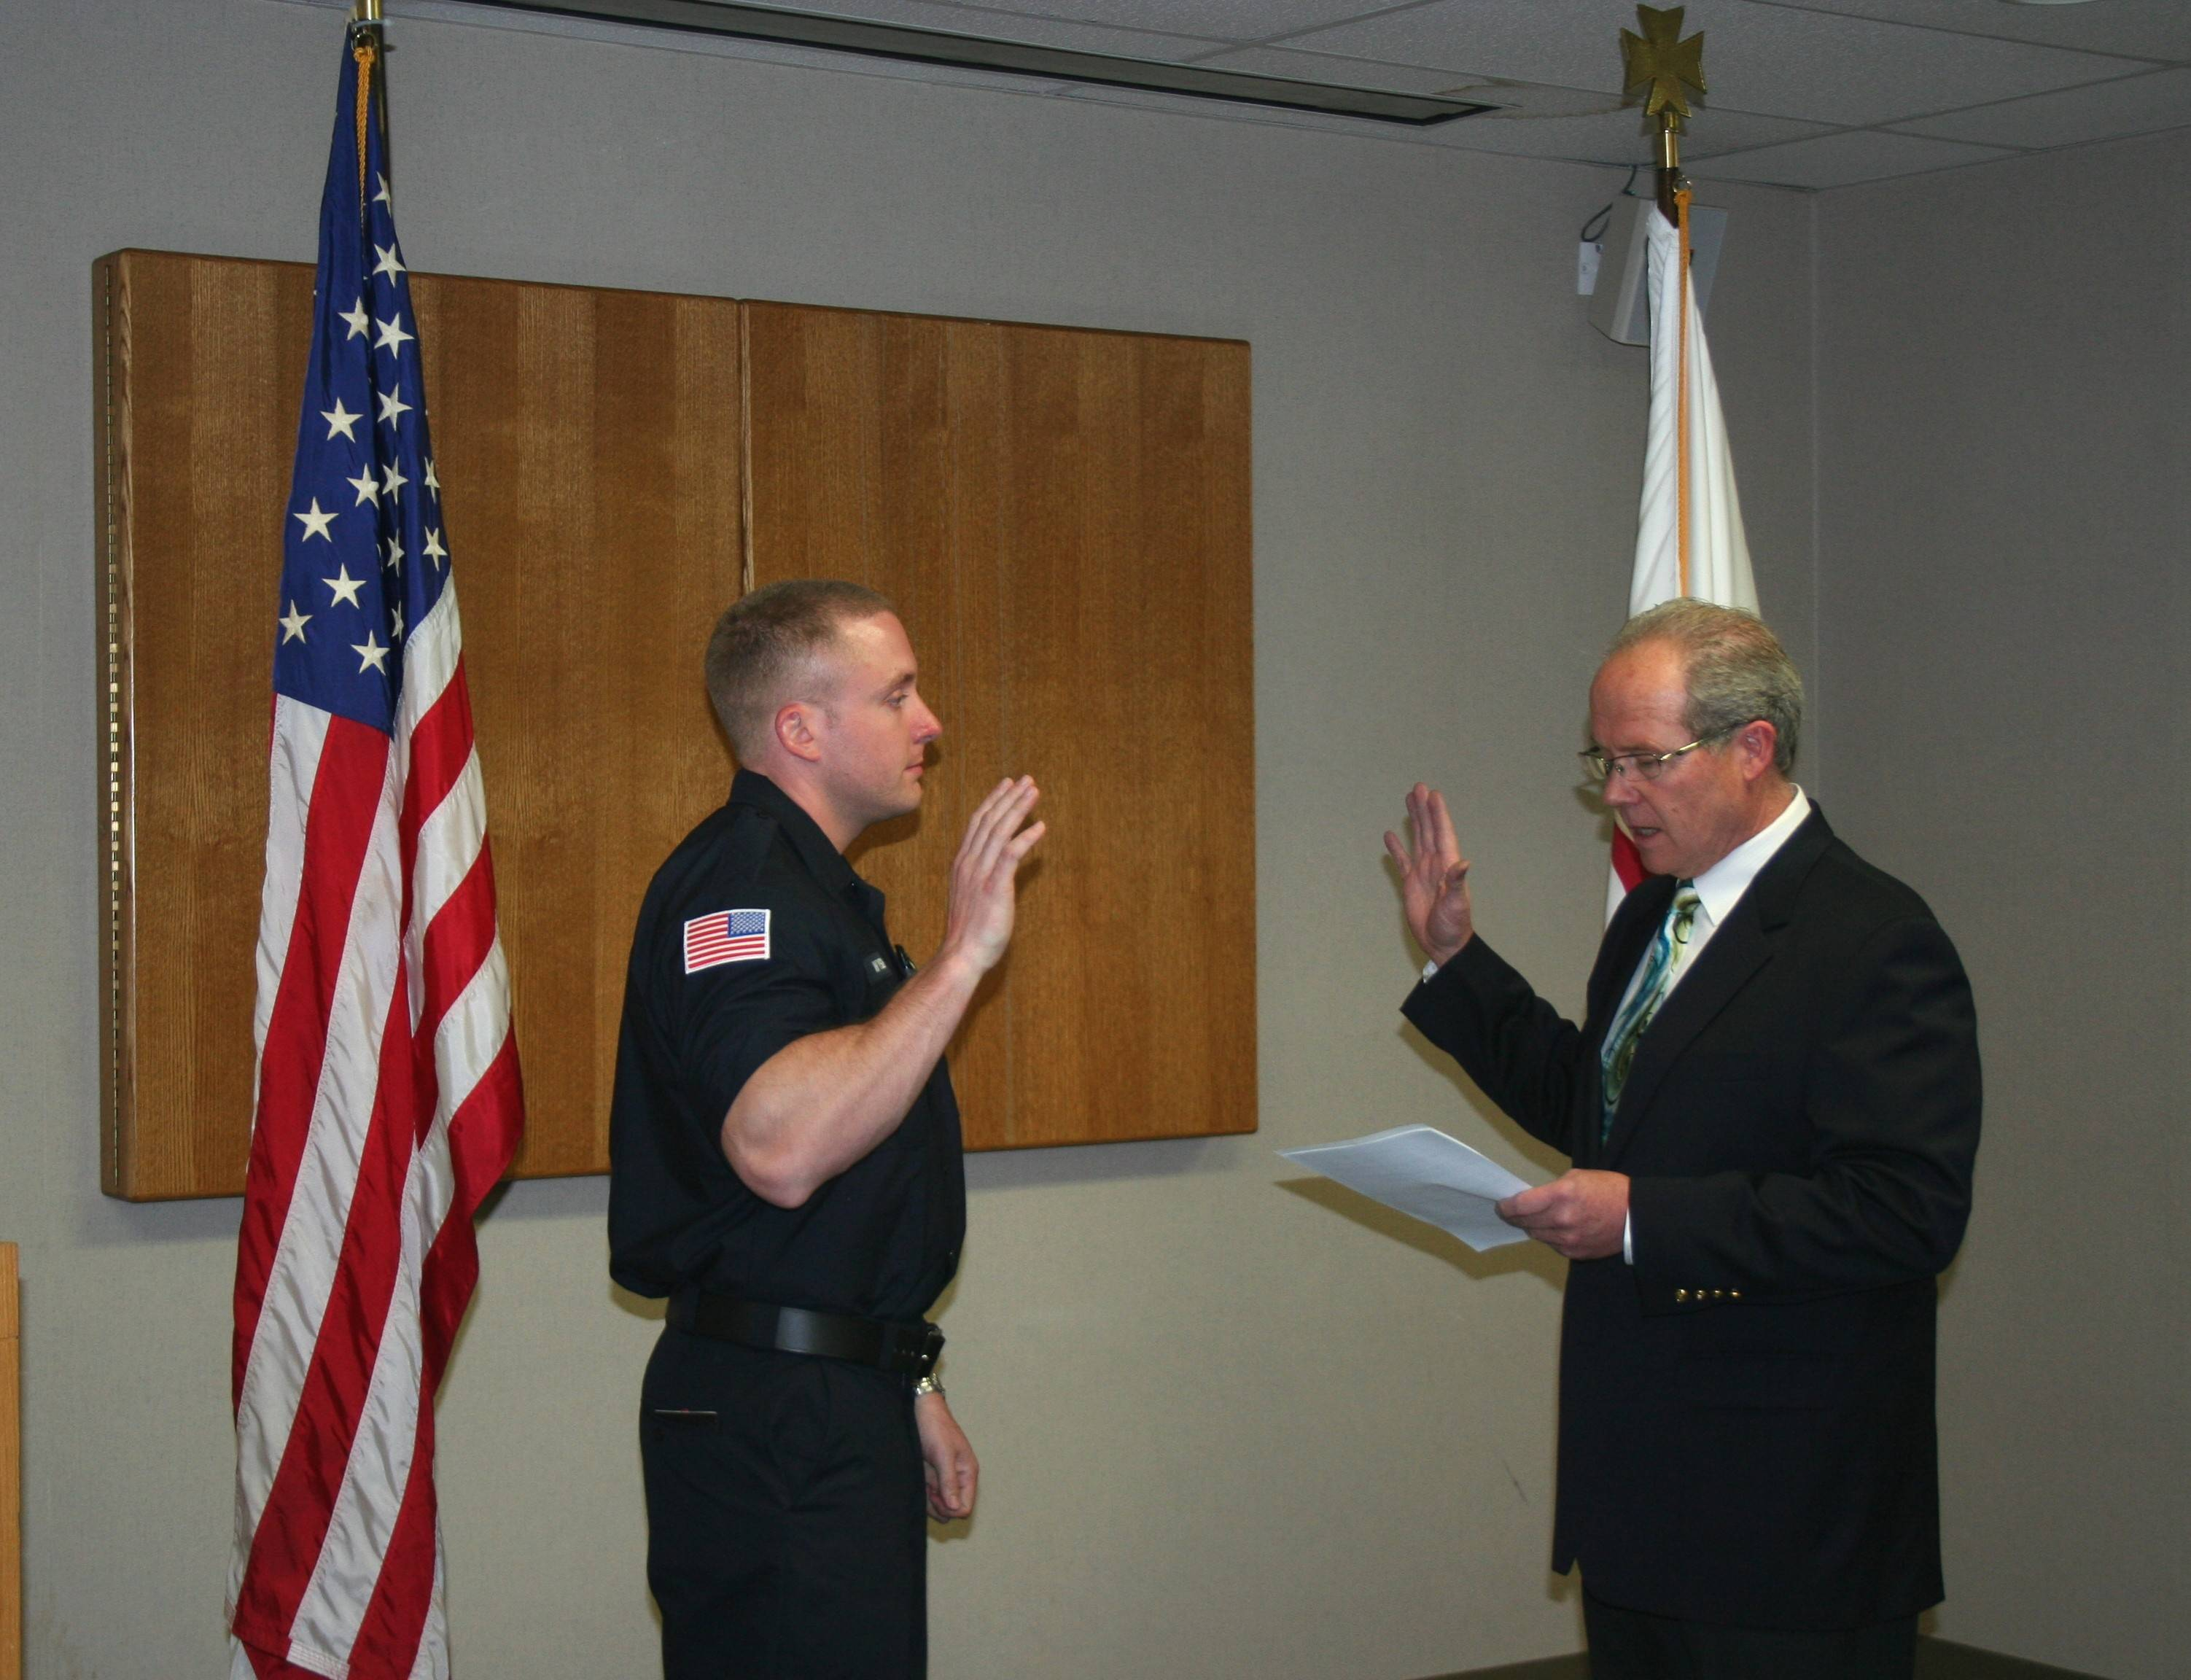 Board of Fire and Police Commissioner Mark Busse, right, administers the oath of office to Joseph Wysong, who joined the Mount Prospect Fire Department as a firefighter/paramedic on June 2.